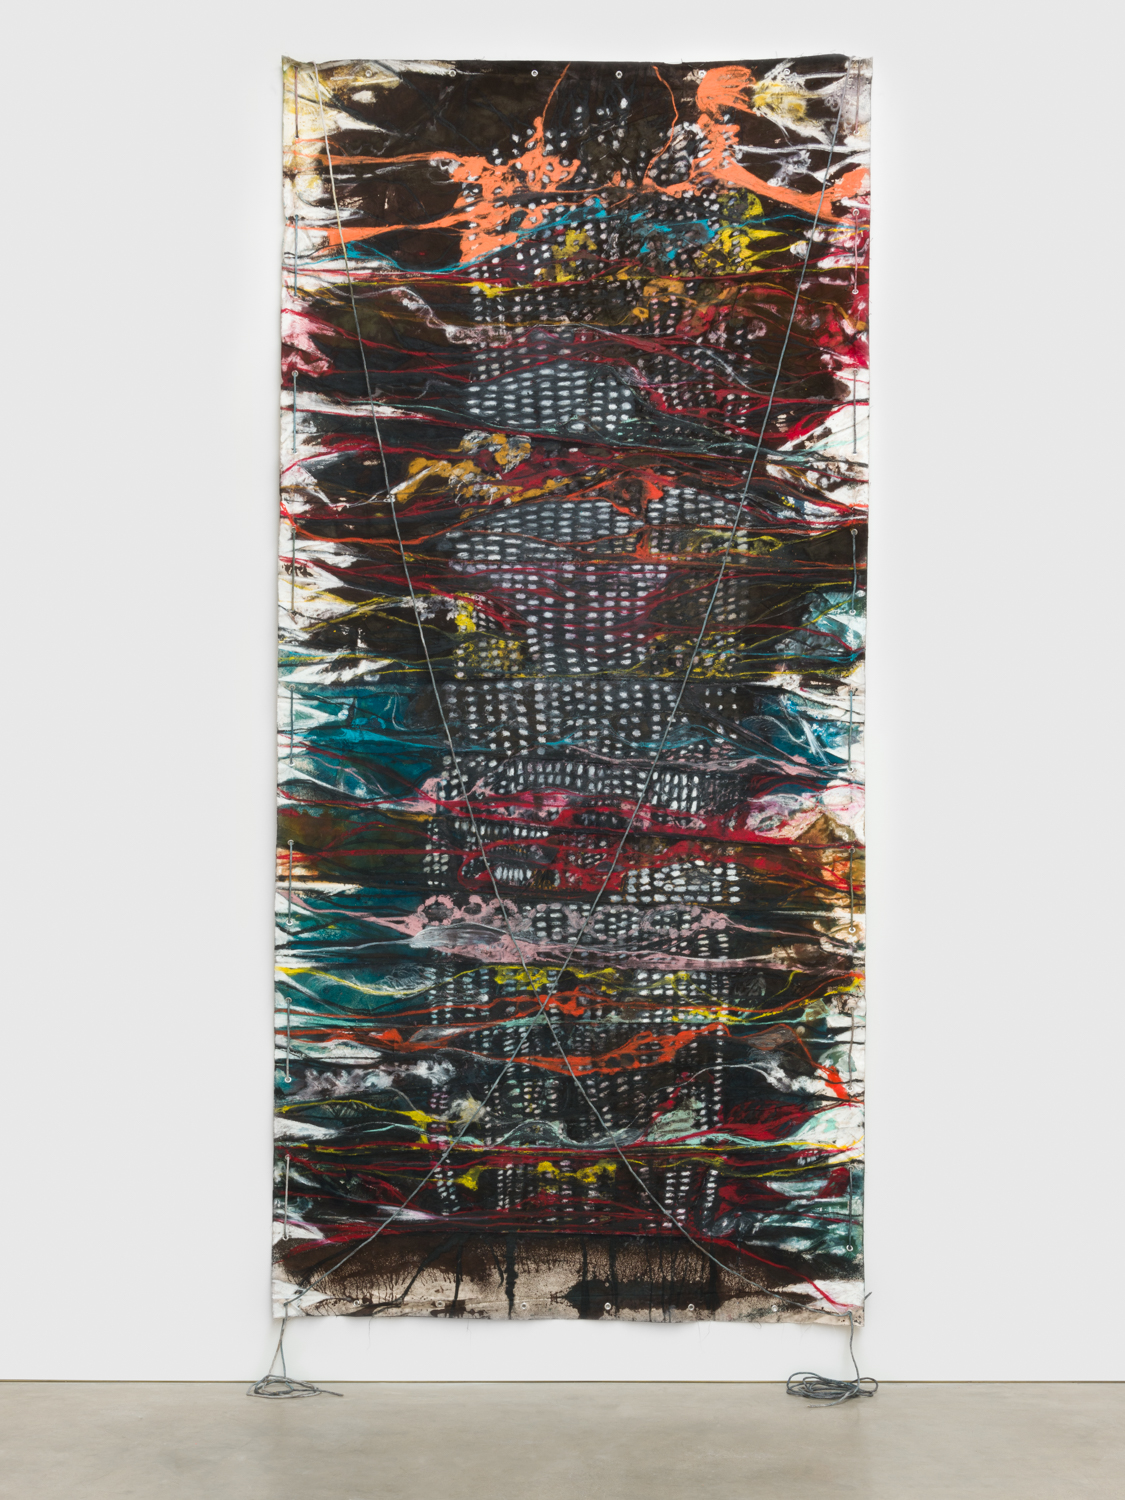 NaotakaHiro  Untitled (Breaking the Waves)  2018 Canvas, fabric dye, oil pastel, rope and grommets 192h x 84w in NaoH036